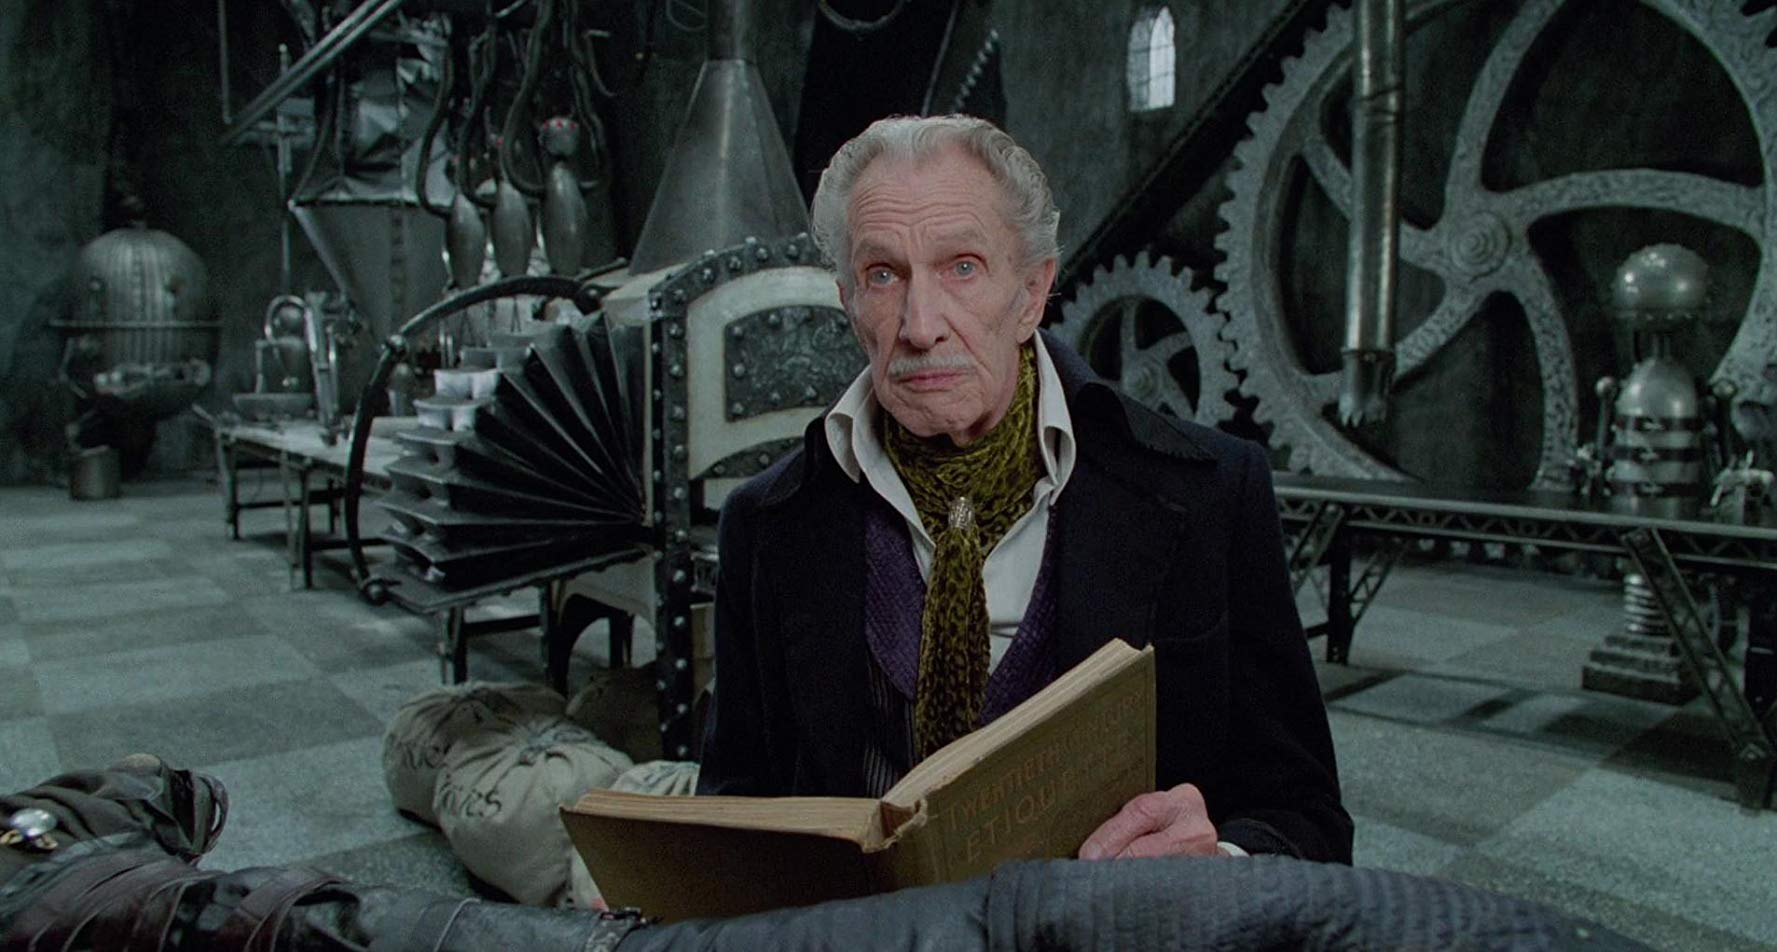 A 79 year old Vincent Price in his last film role as Edward's creator in Edward Scissorhands (1990)